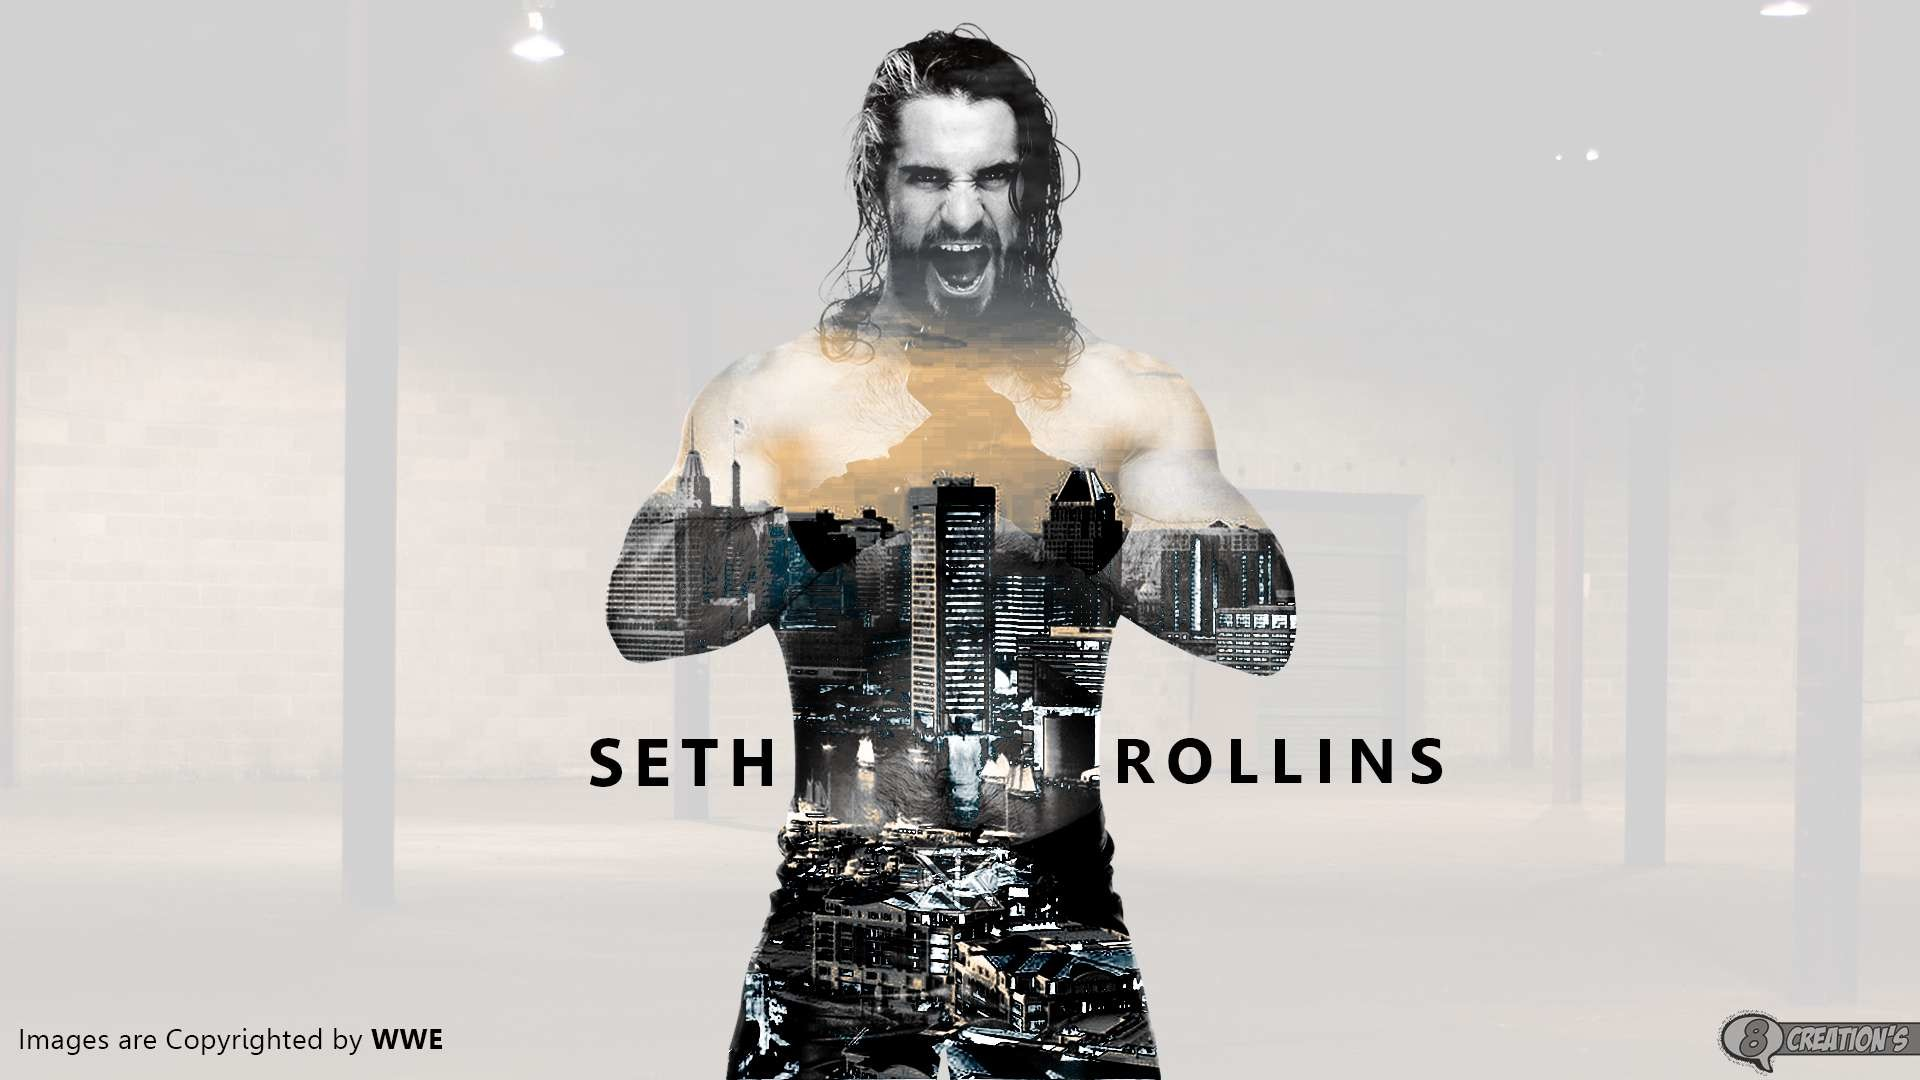 1920x1080 Seth Rollins Wallpaper HD Best Collection Of WWE Superstar